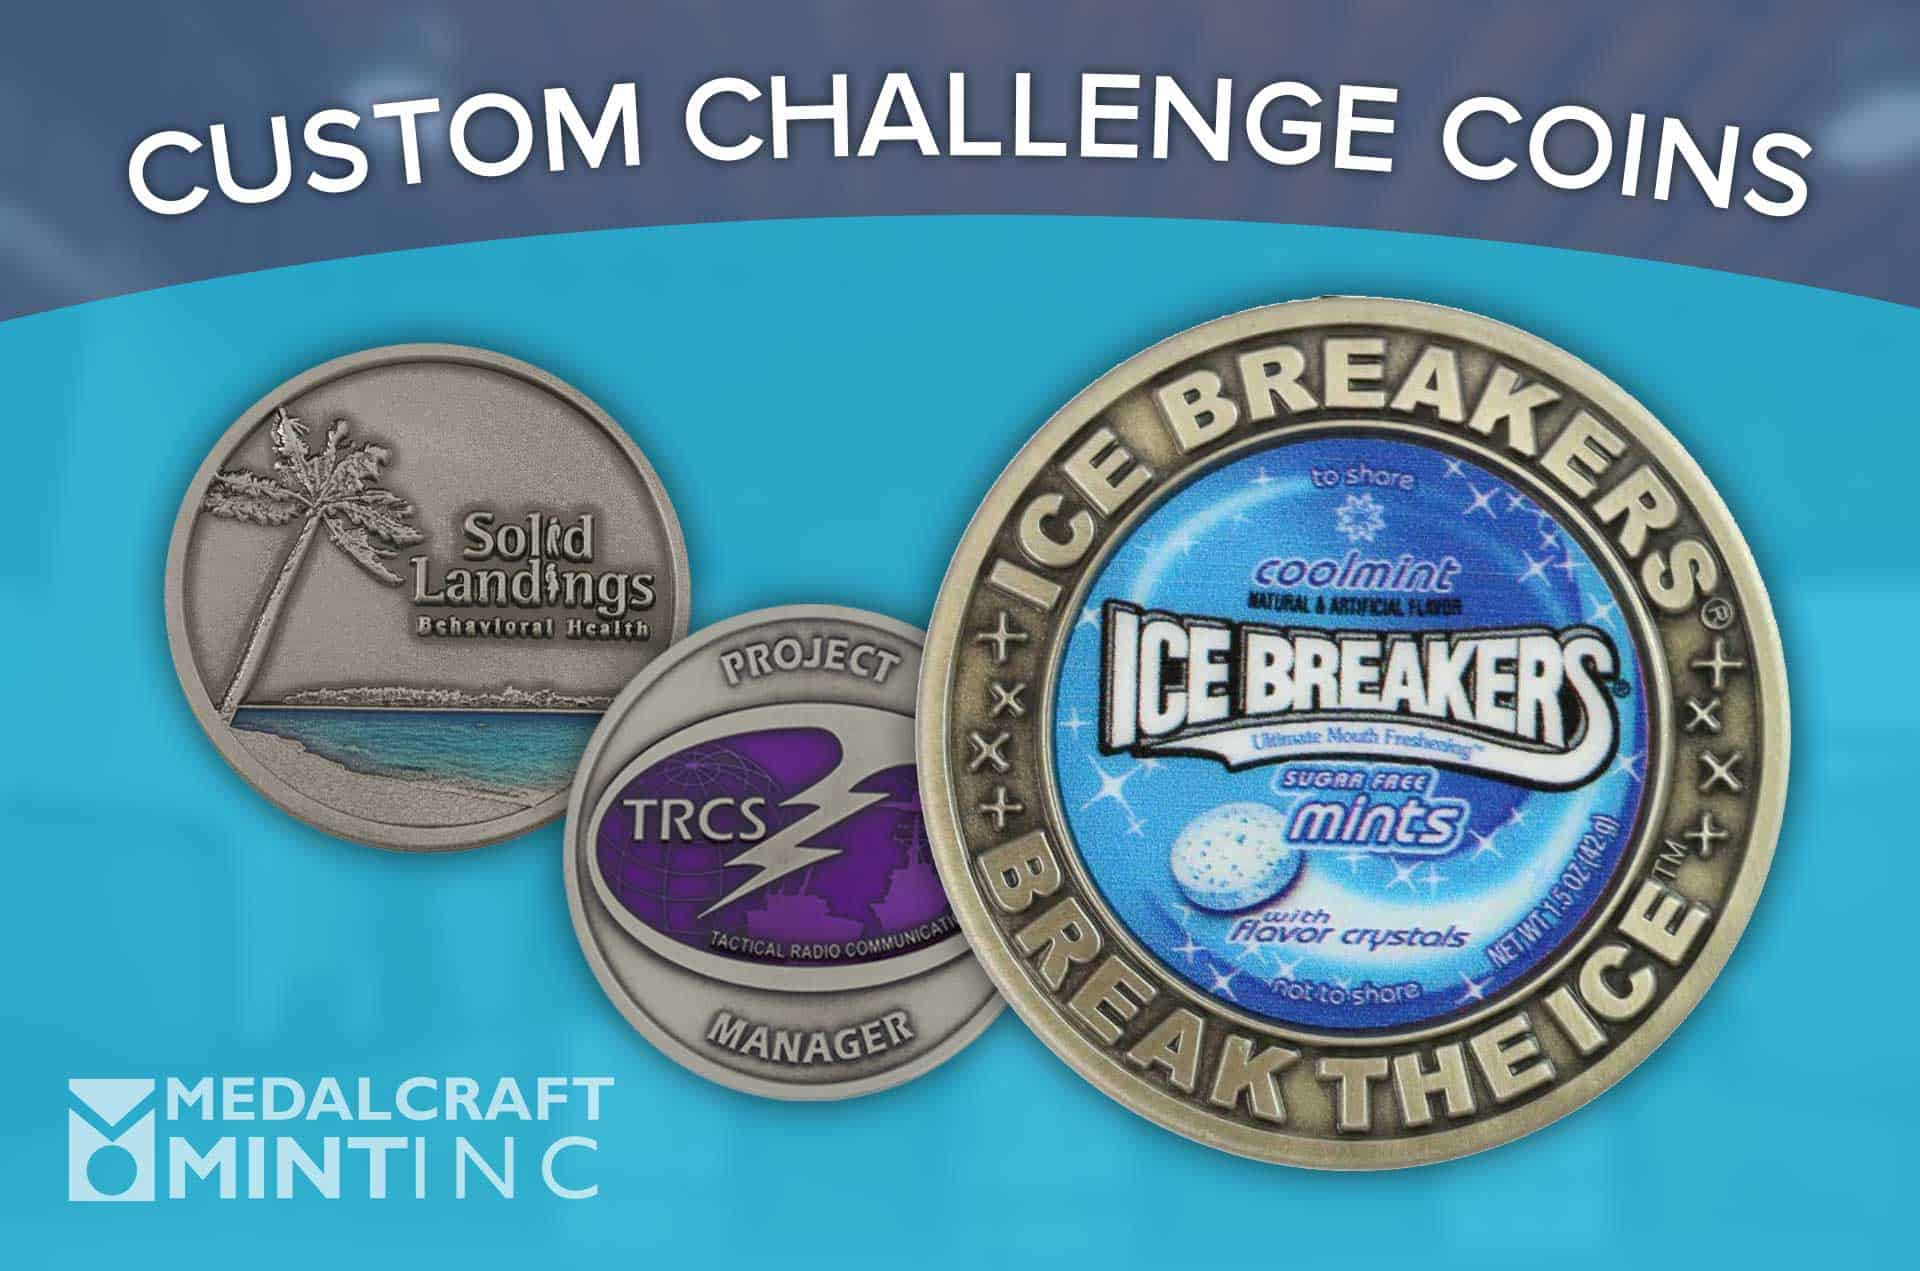 Medalcraft Mint challenge coin